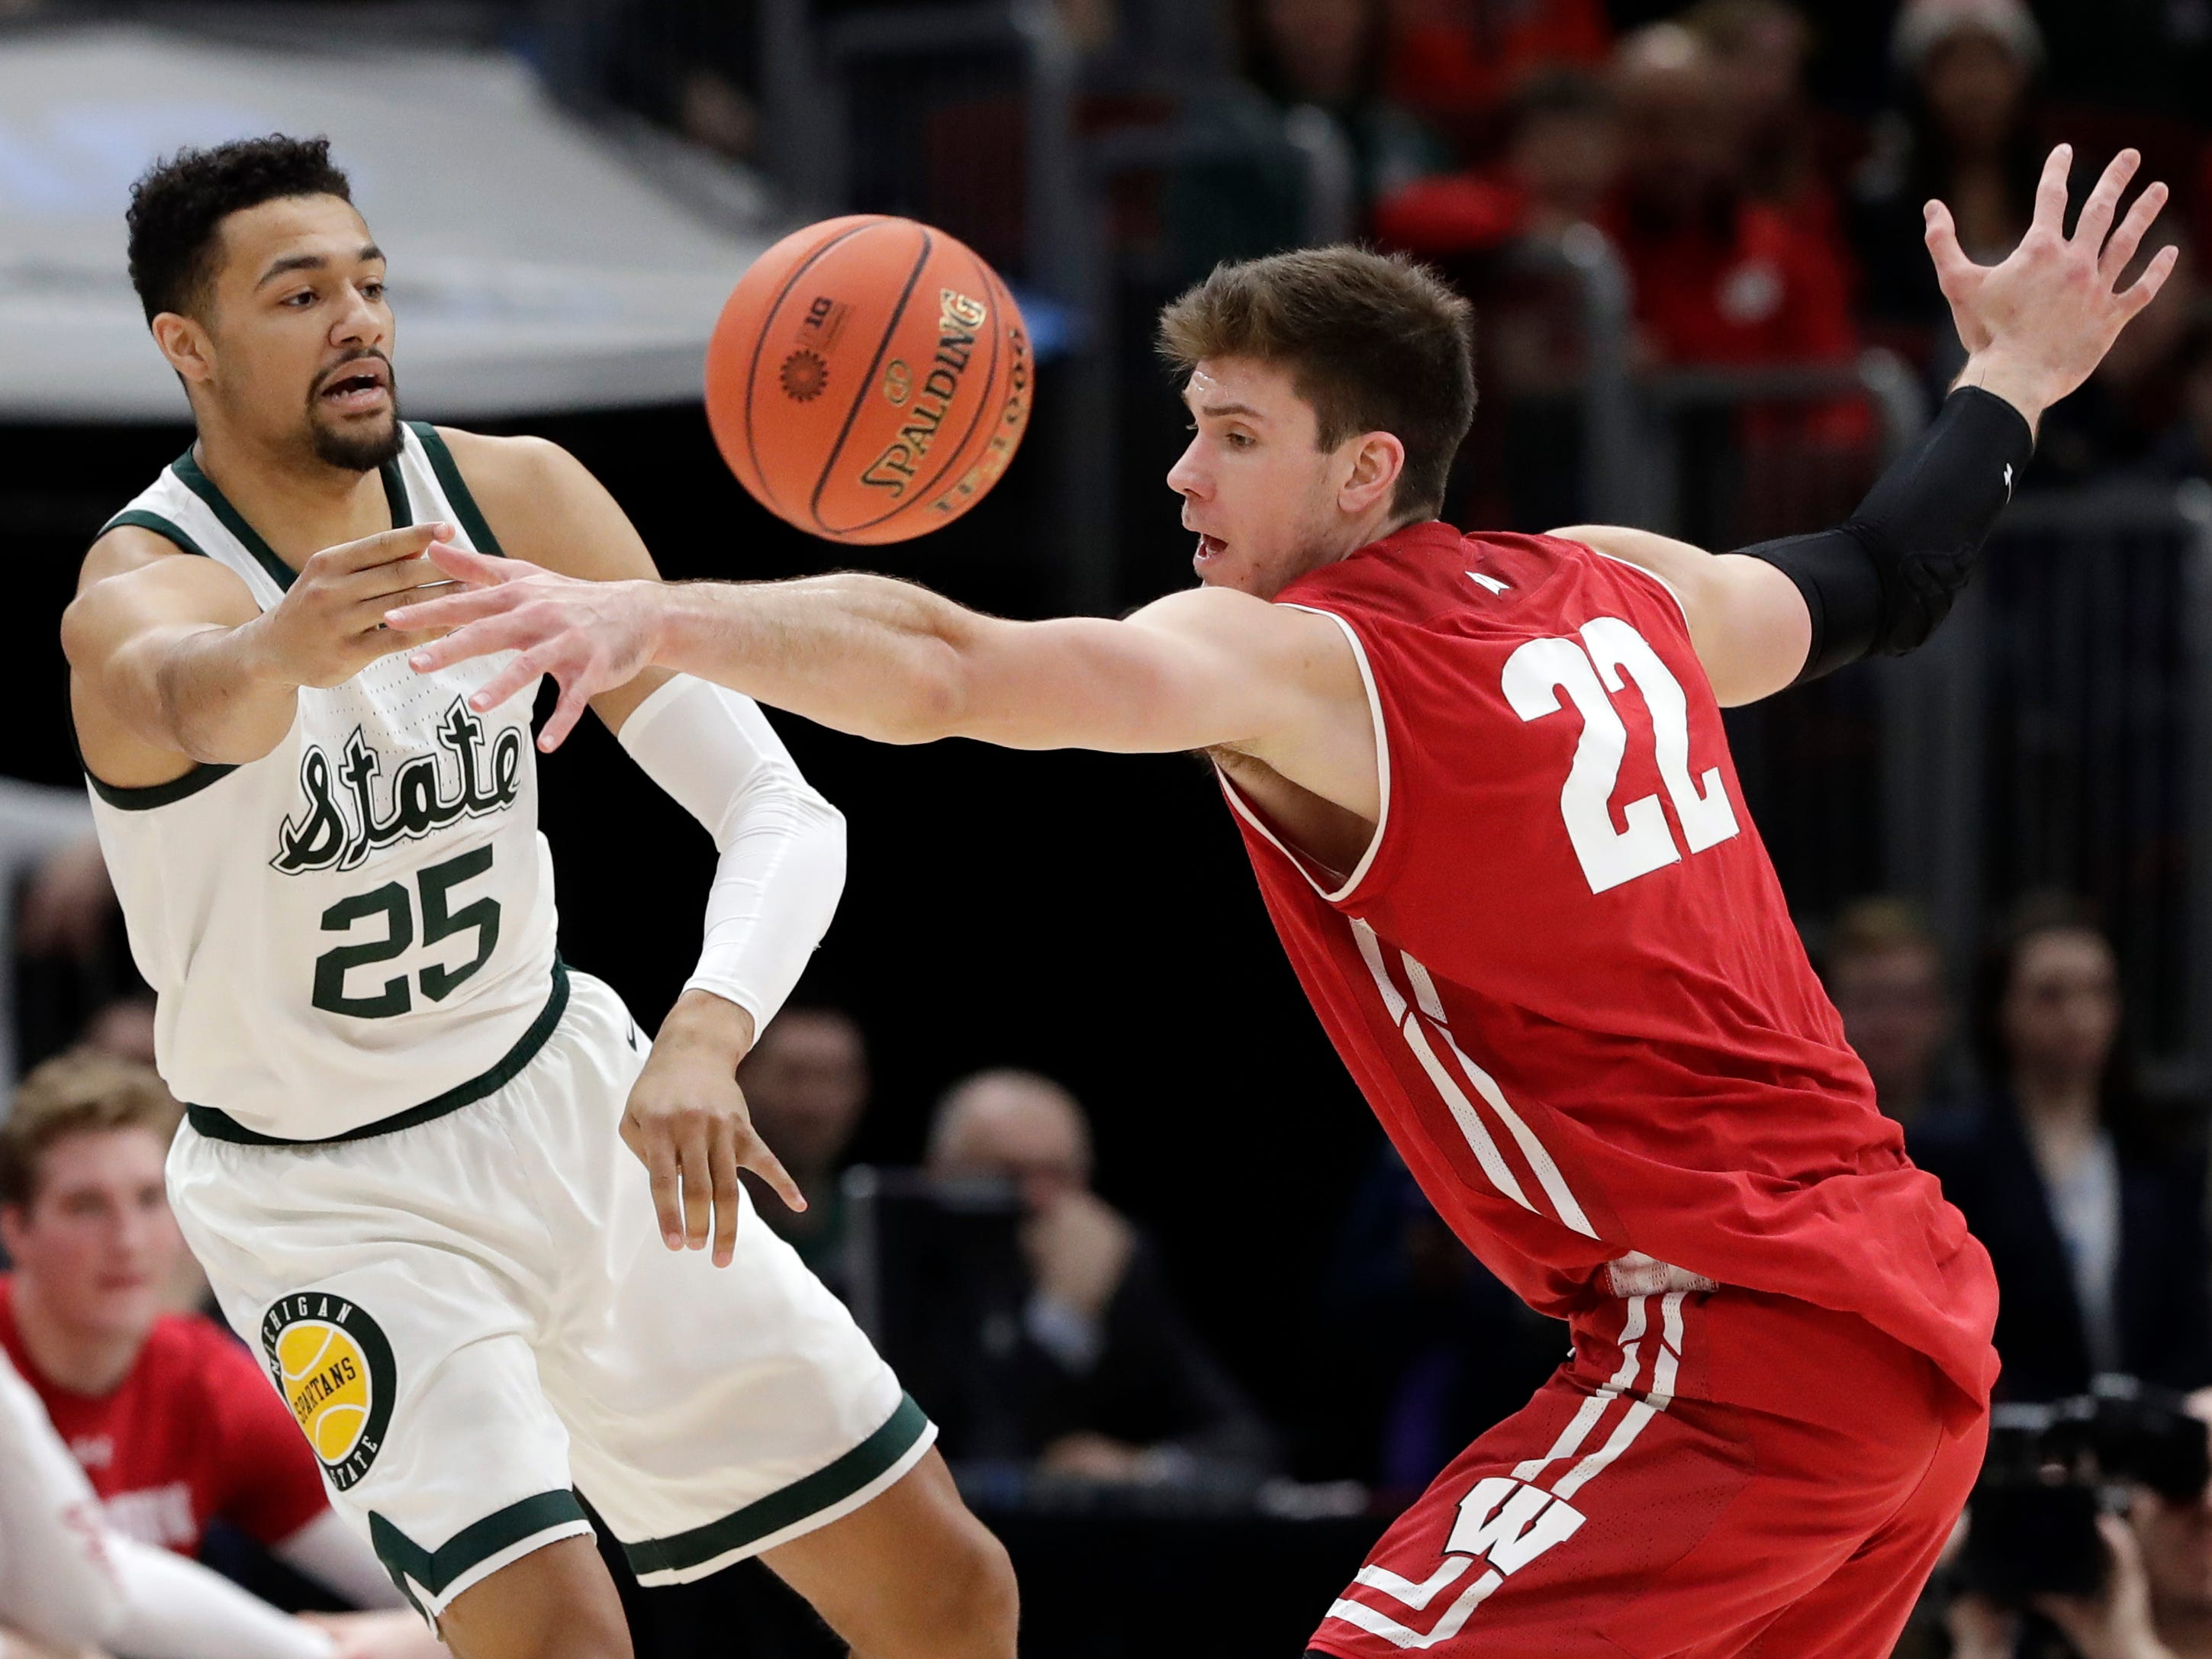 Michigan State's Kenny Goins passes the ball around Wisconsin's Ethan Happ during the first half.